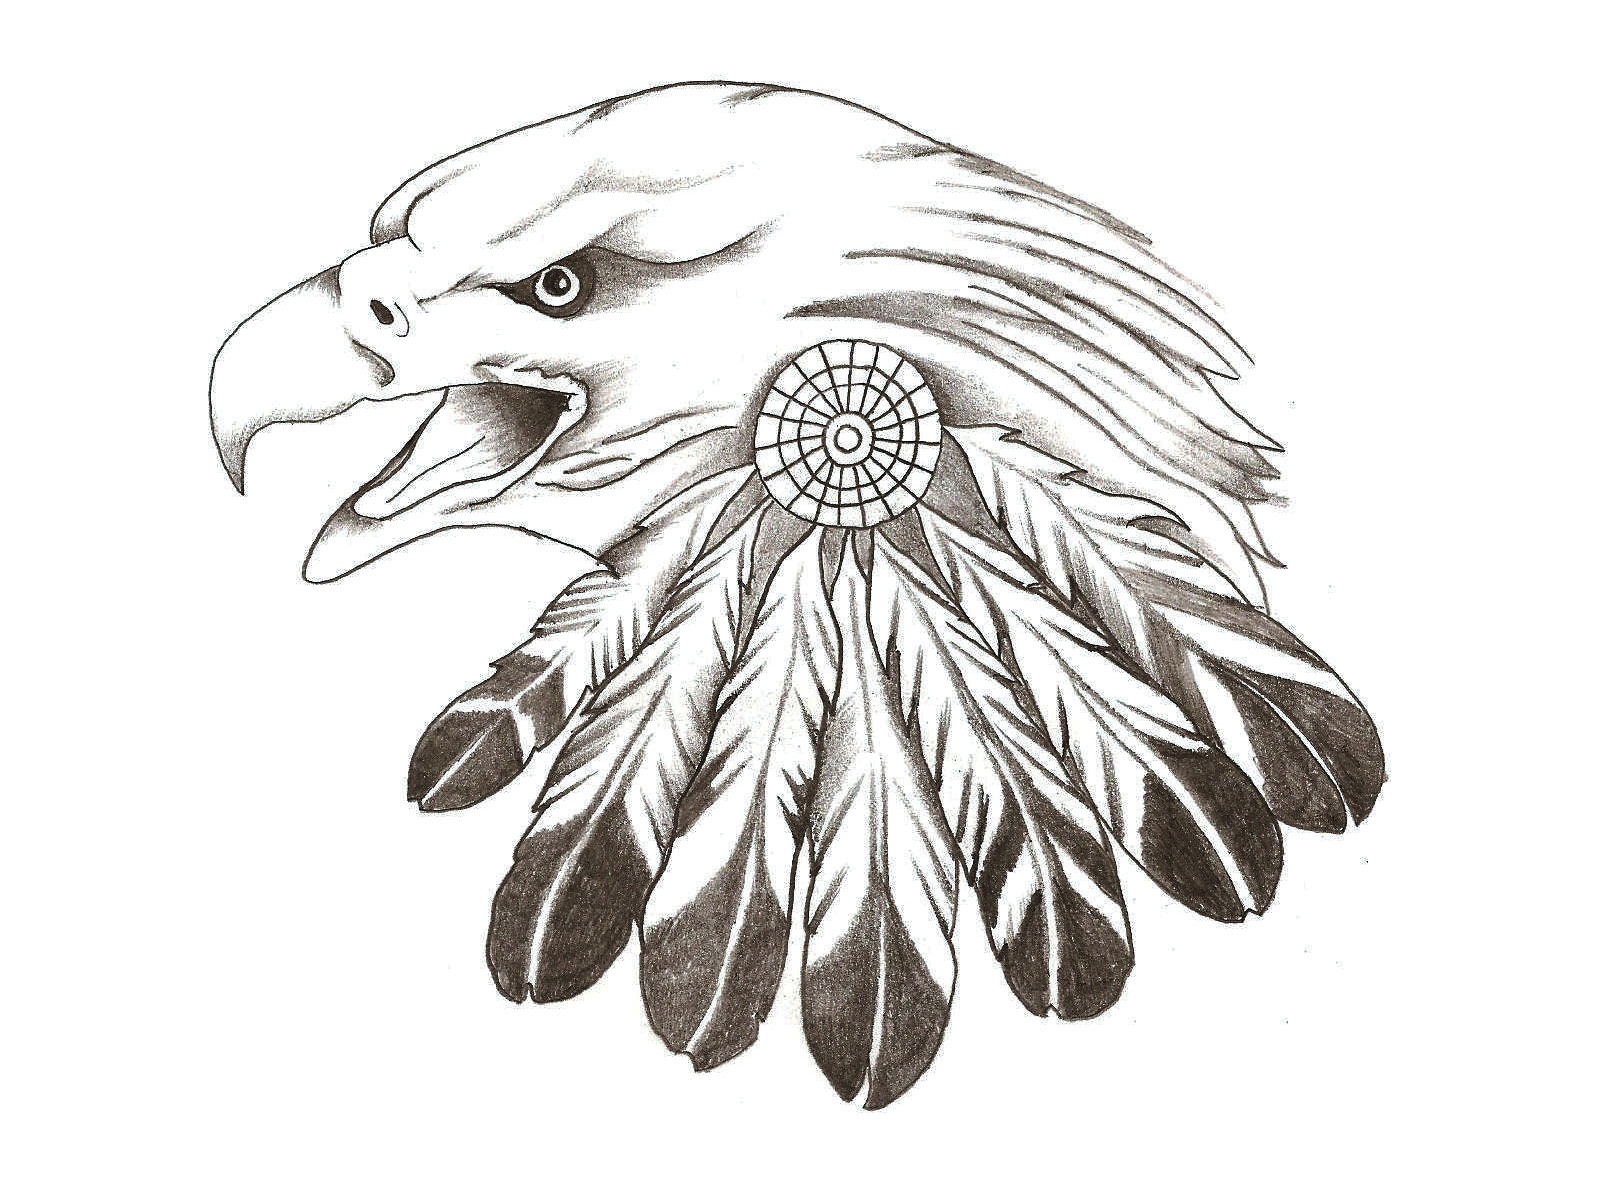 65 eagle feathers tattoos designs with meanings. Black Bedroom Furniture Sets. Home Design Ideas